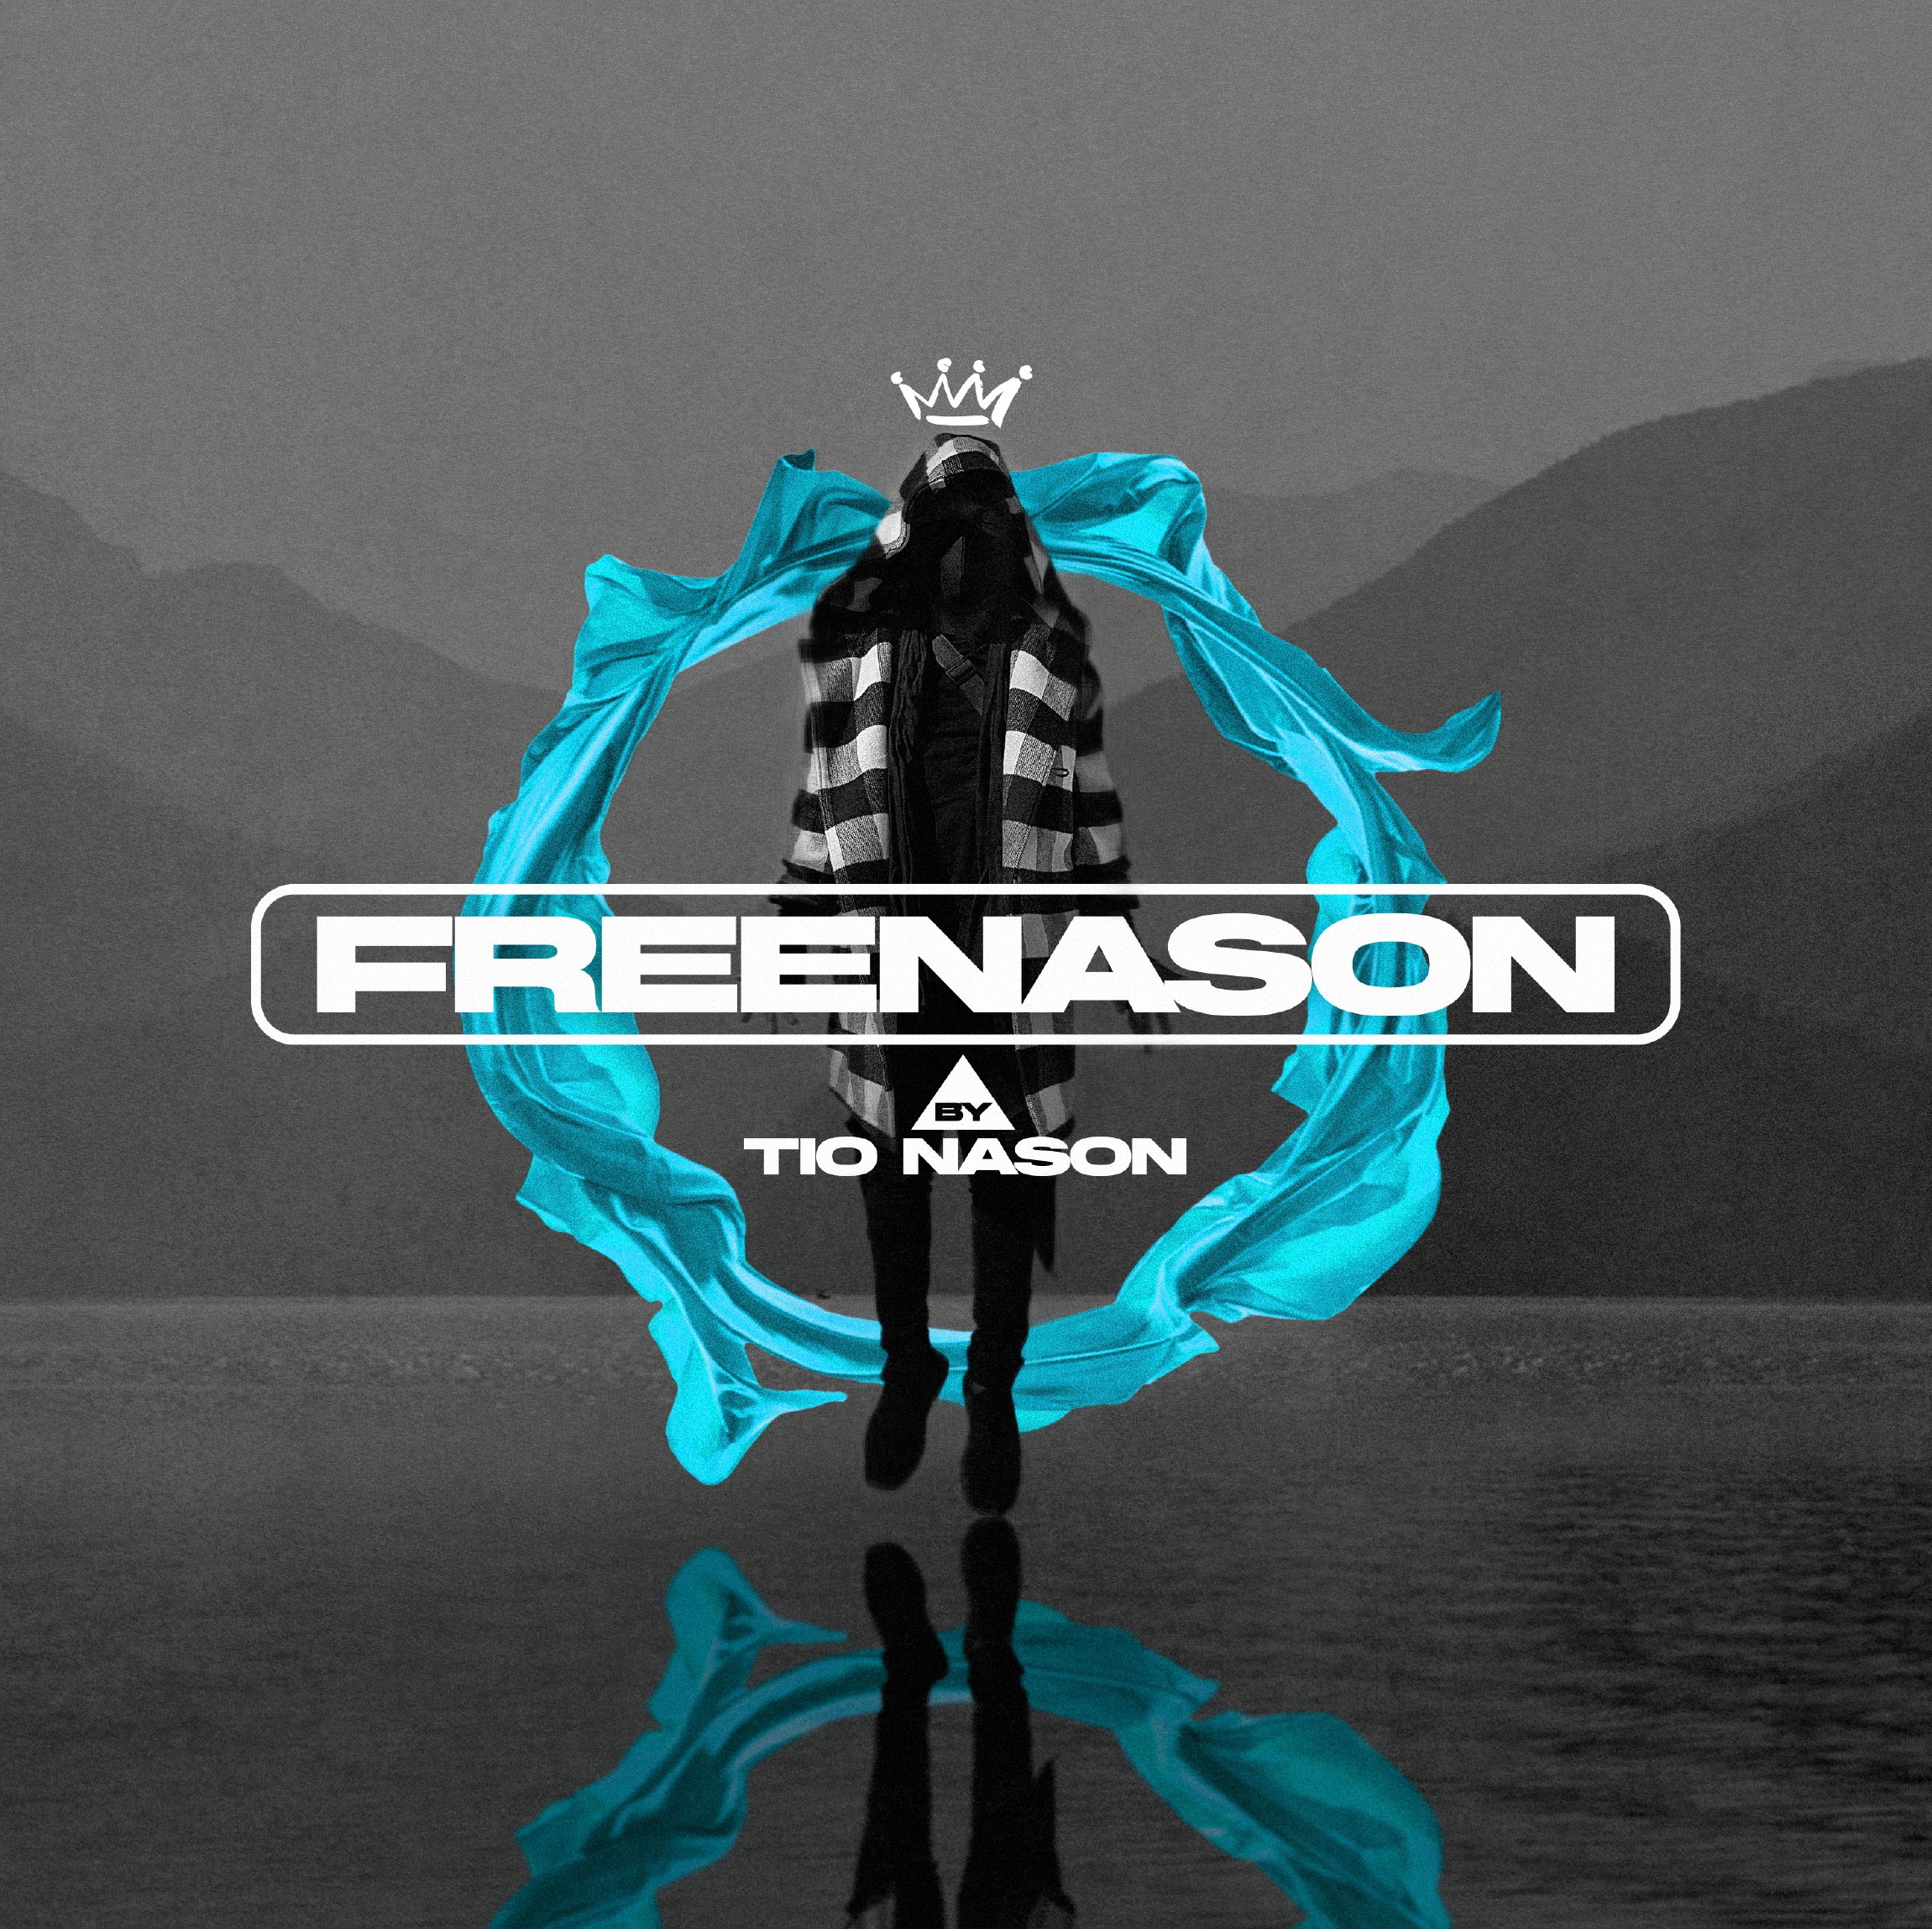 TIO NASON'S EP DEBUTS AT NUMBER ONE ON DEEZER CHARTS